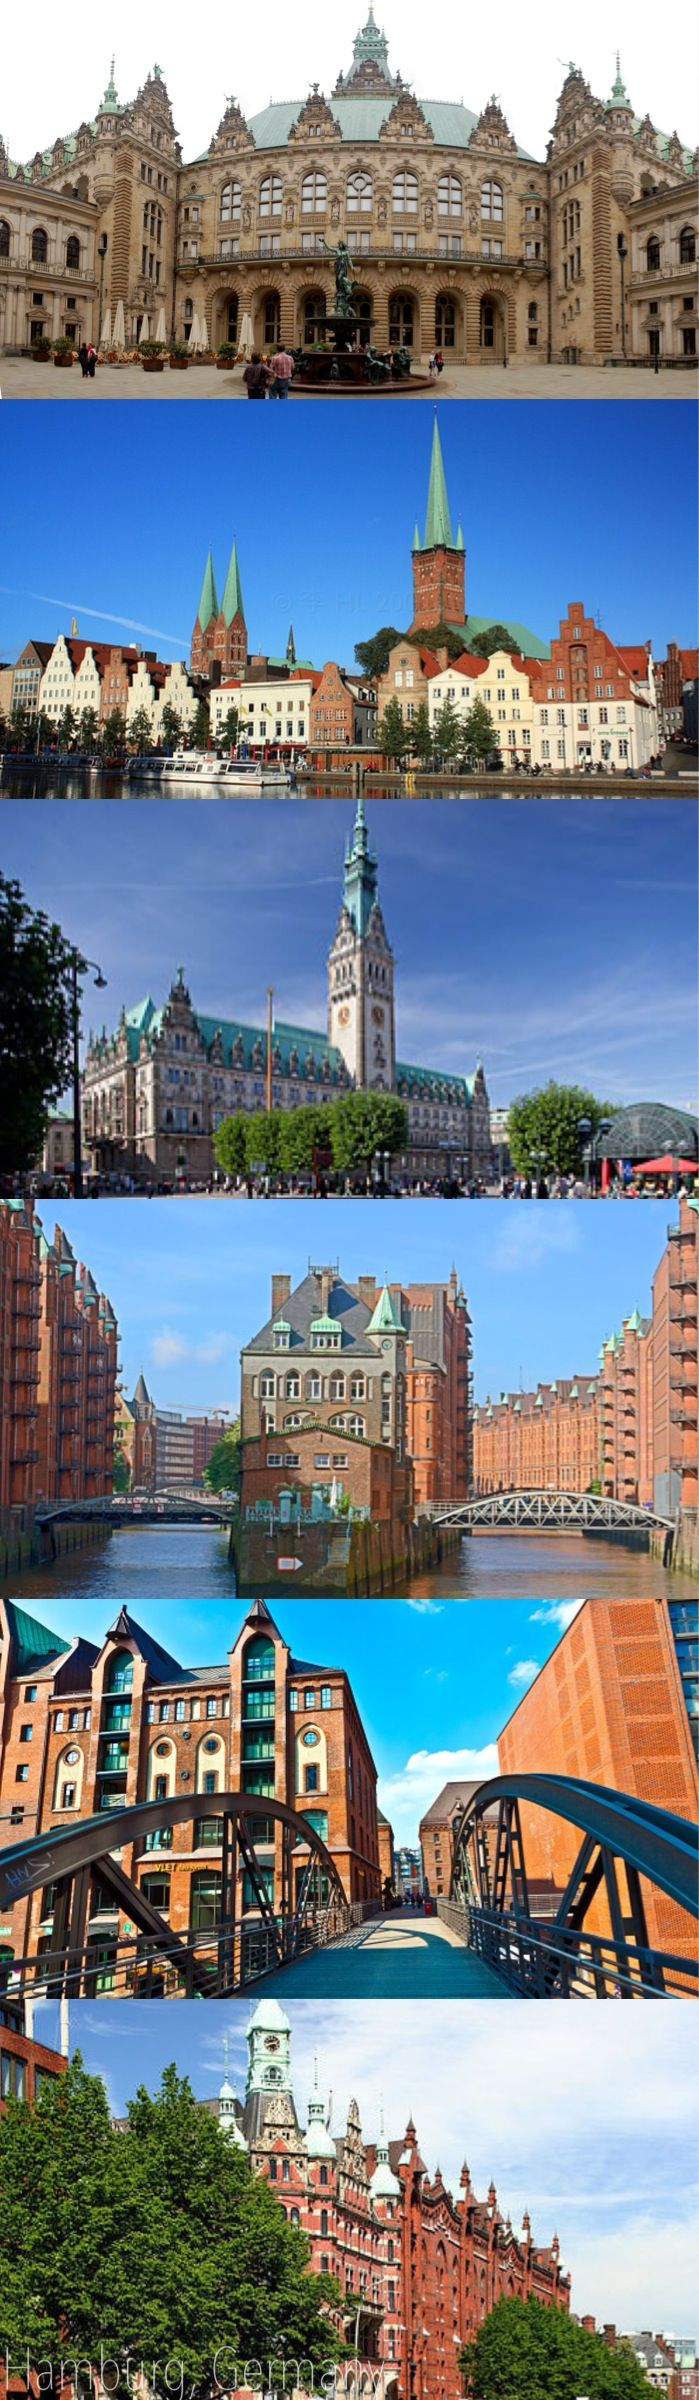 Hamburg, Germany's second largest city and home to 1,8 million people, is located in the North of the country. With a harbor, interconnecting waterways, and hundreds of canals, Hamburg has more bridges than Amsterdam and Venice combined, all adding up a to a great city with lots of maritime charm.